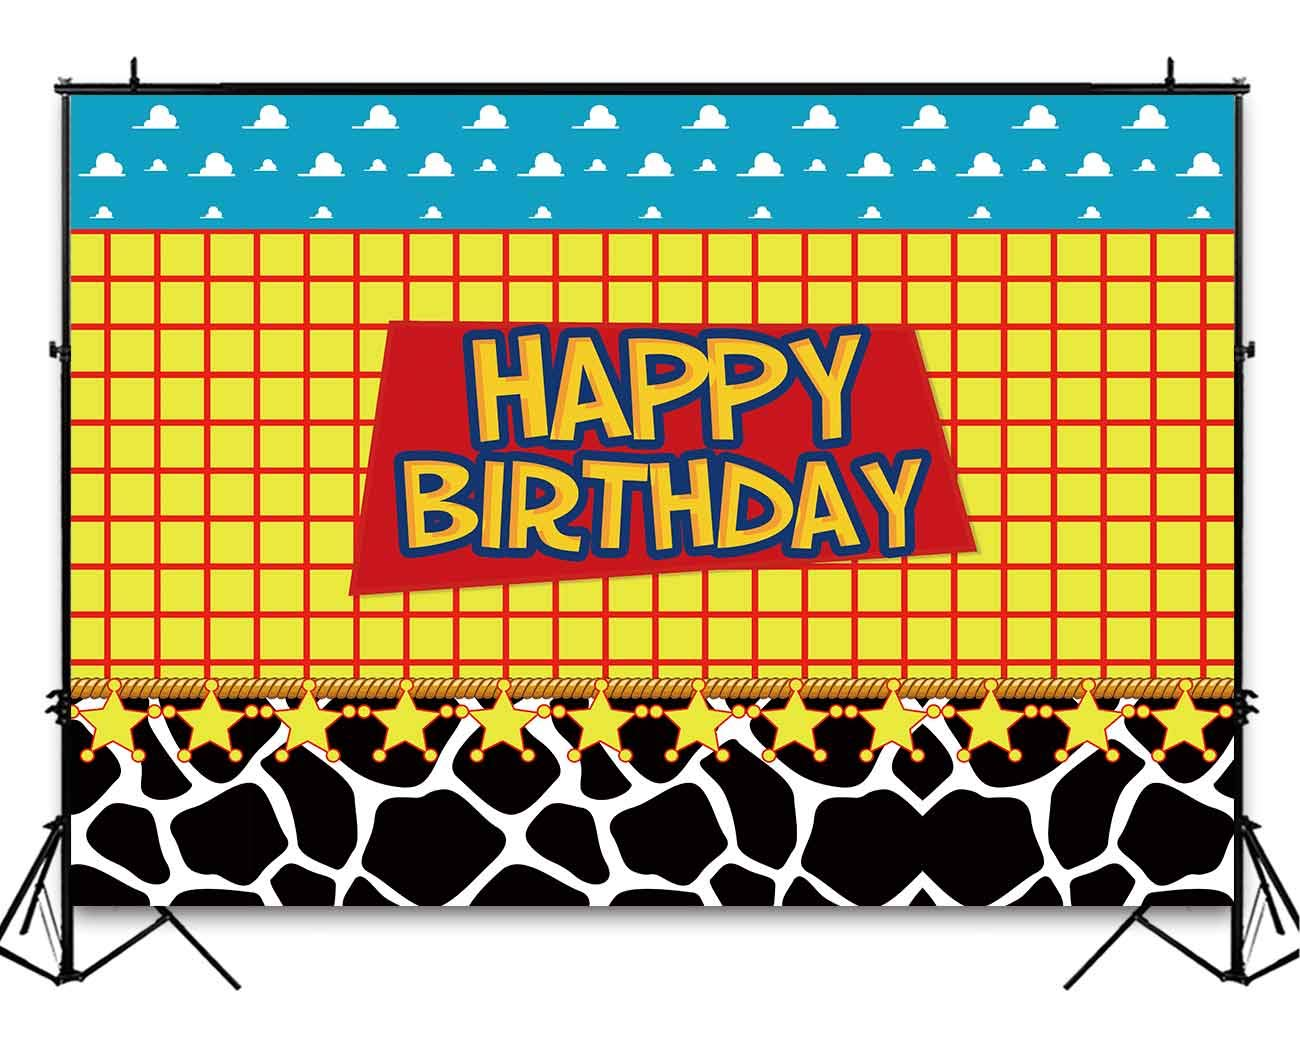 Funnytree 8x6ft Durable Fabric Happy Birthday Party Backdrop No Wrinkles Kids Cartoon Themed Baby Boy Photography Background Western Cowboy Cowgirl Sky Clouds Cow Print Photo Booth Decorations Banner